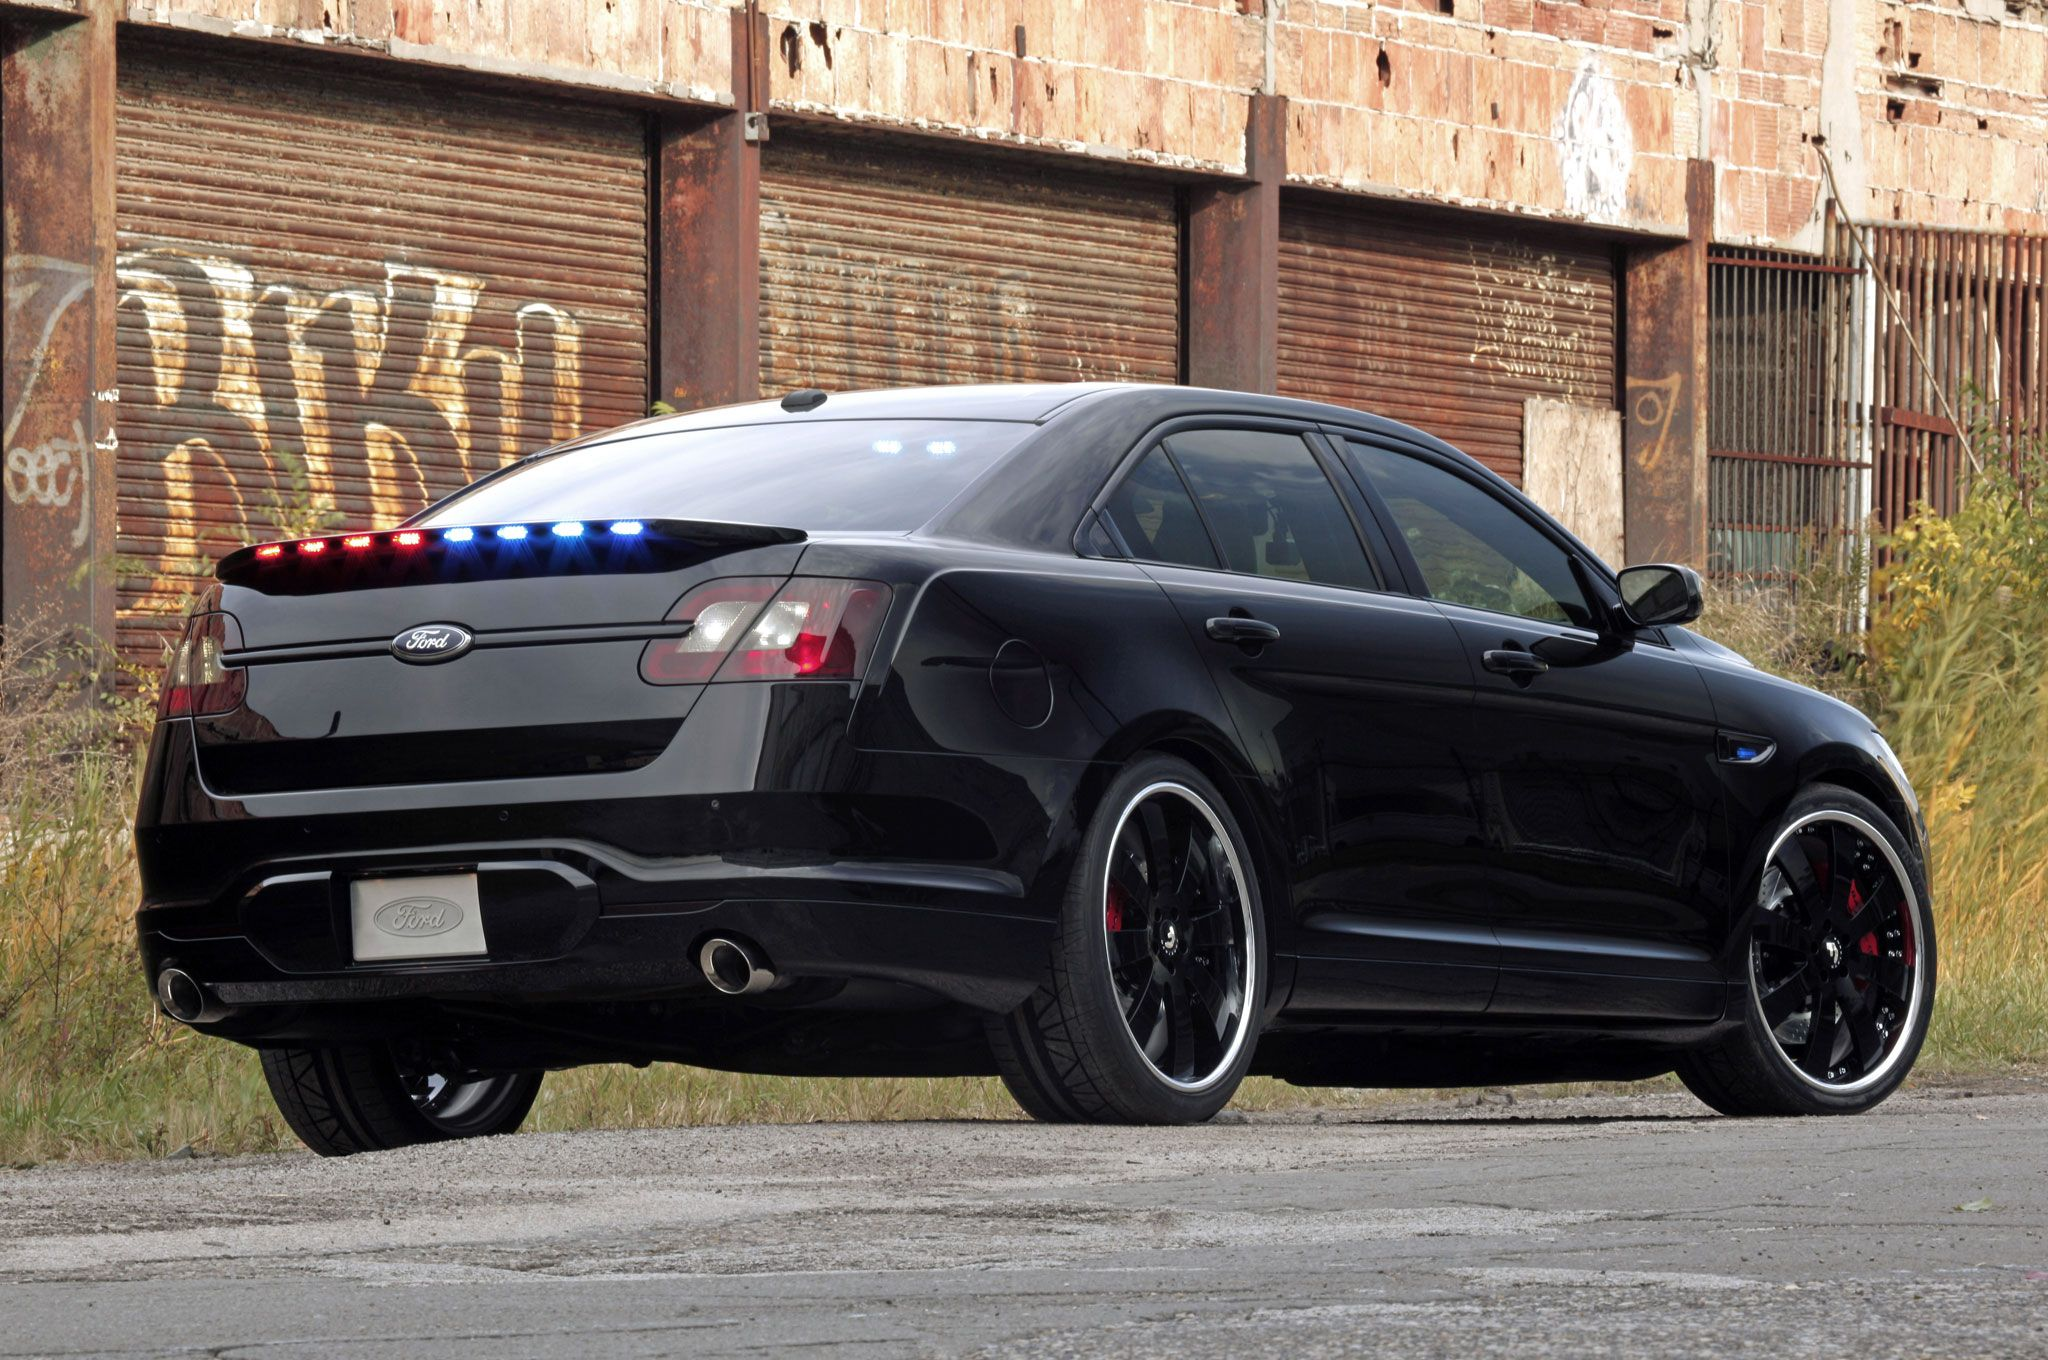 Ford Police Interceptor Stealth Edition Ford Police Undercover